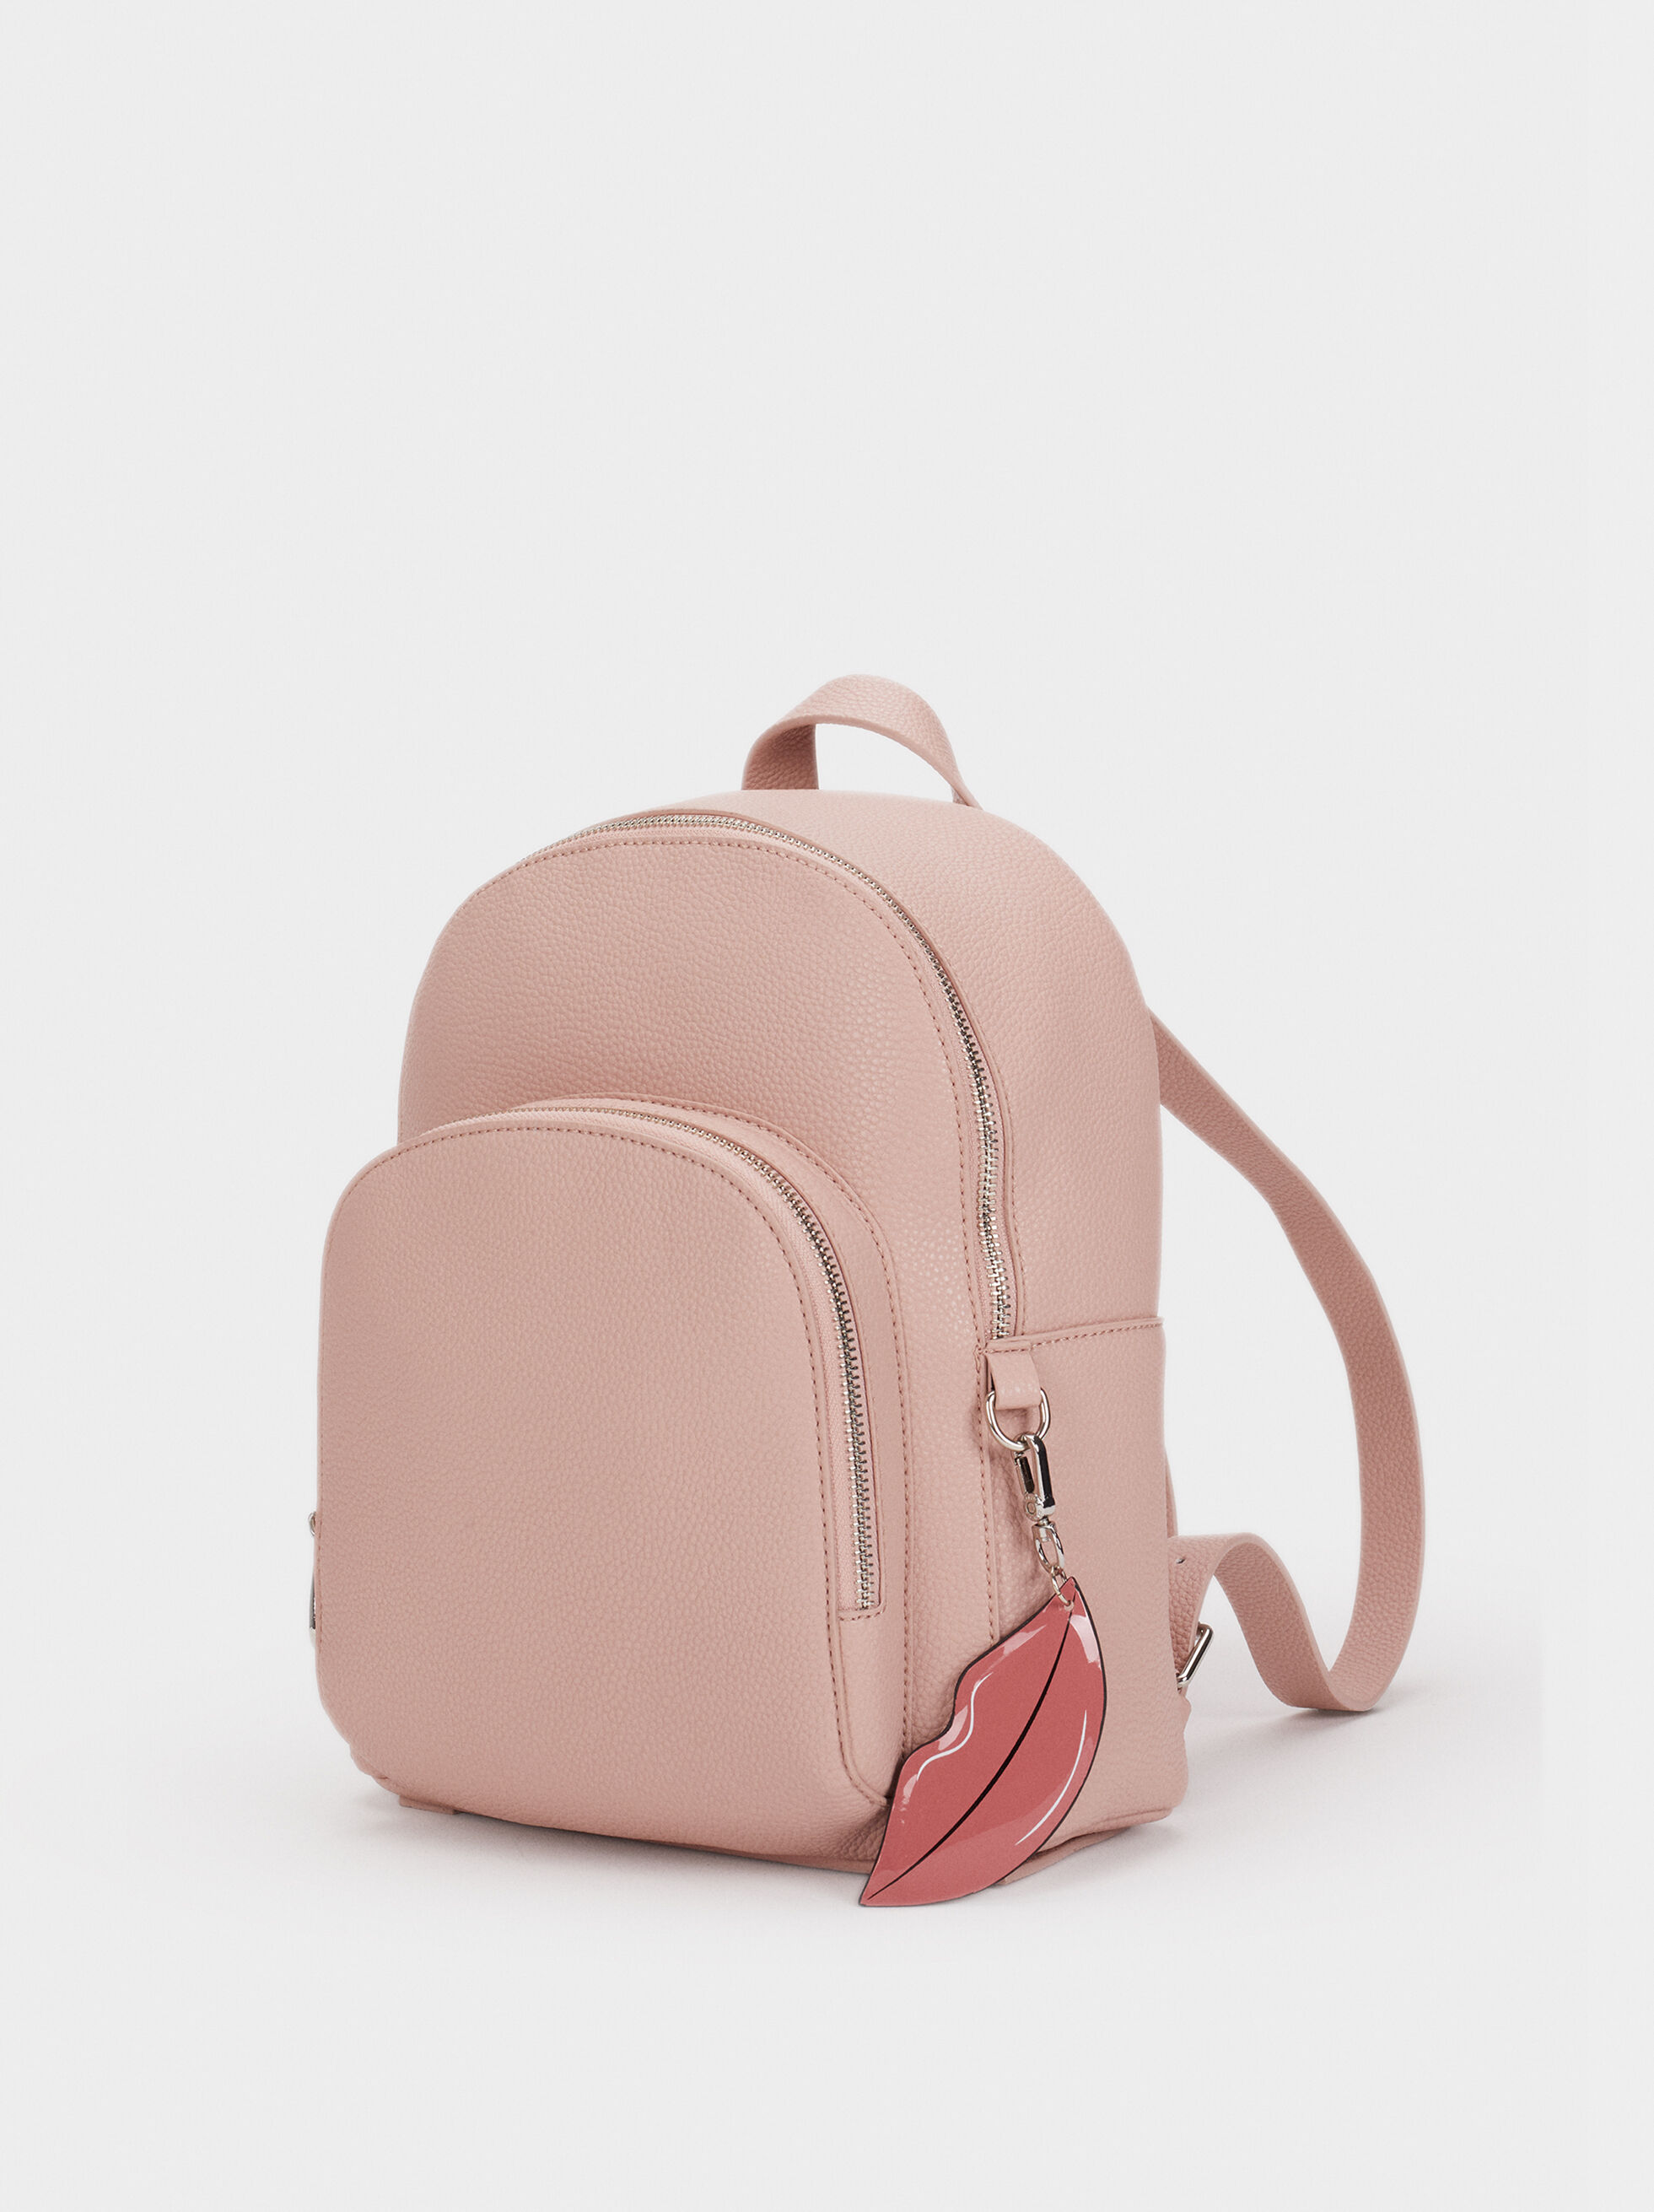 We Are Love Backpack, Pink, hi-res